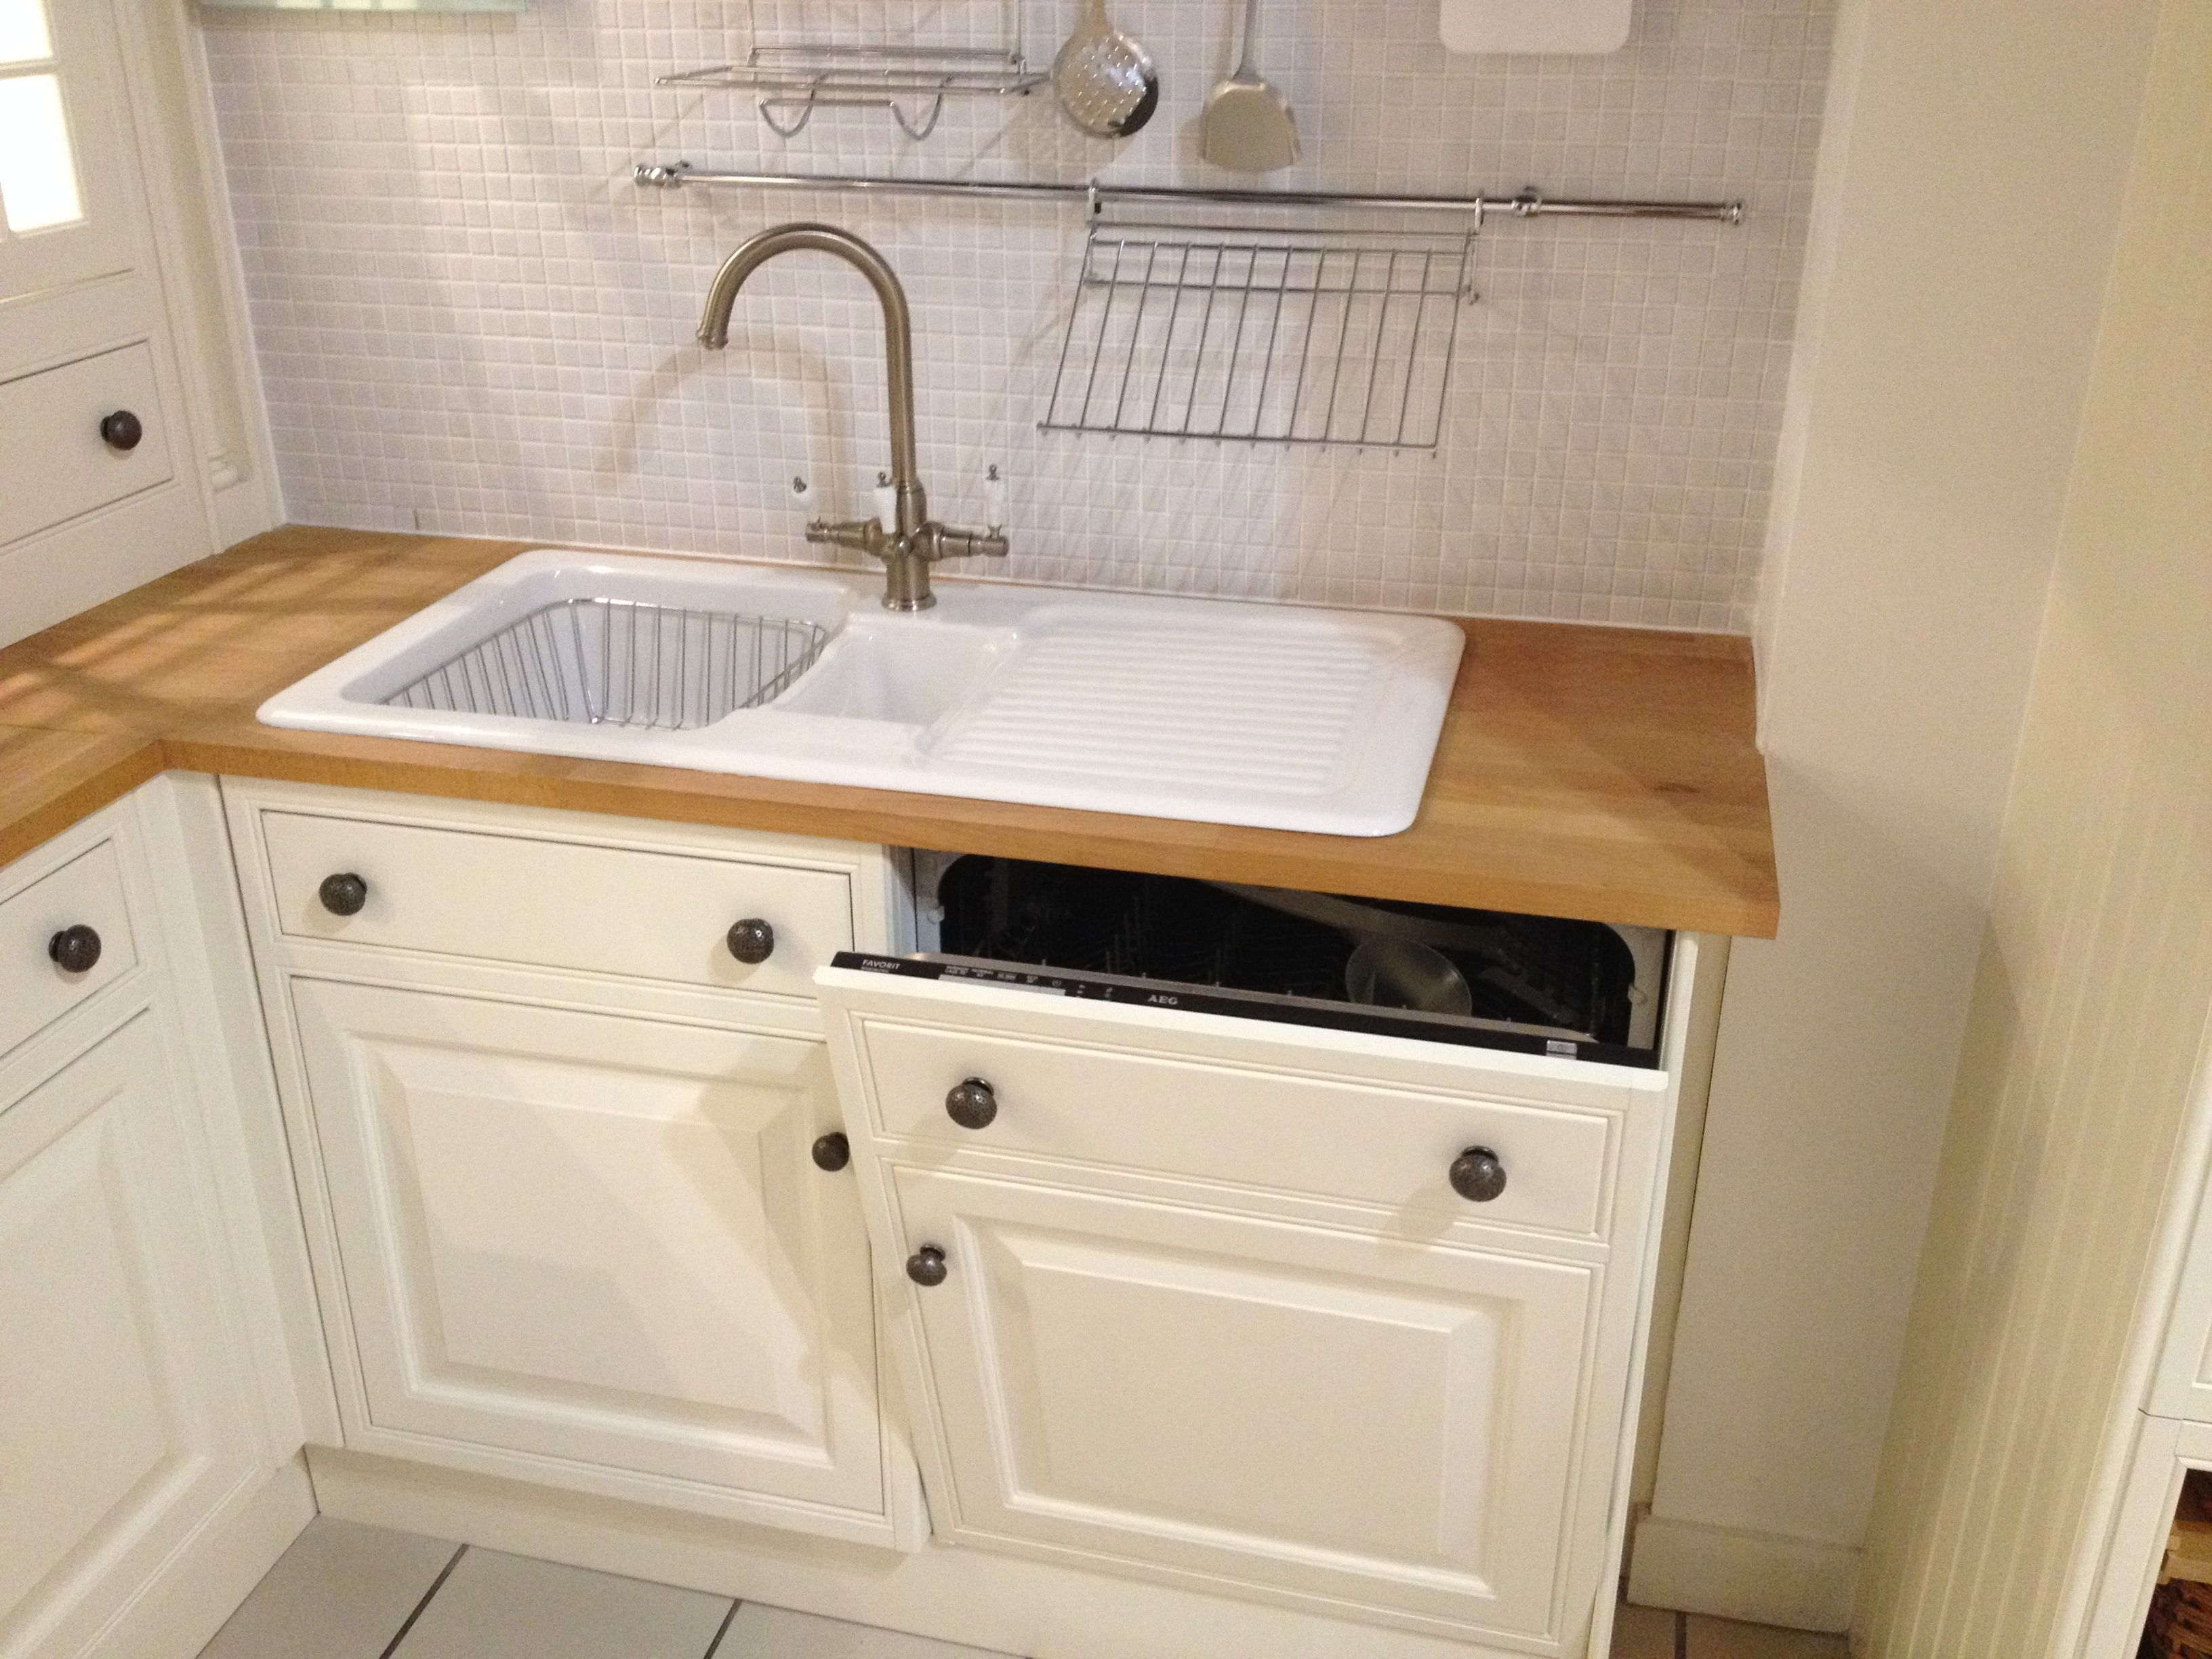 Like The Placement Of The Dishwasher Directly Under The Sink Draining Board Diy Kitchen Remodel Affordable Furniture Stores Under Sink Dishwasher